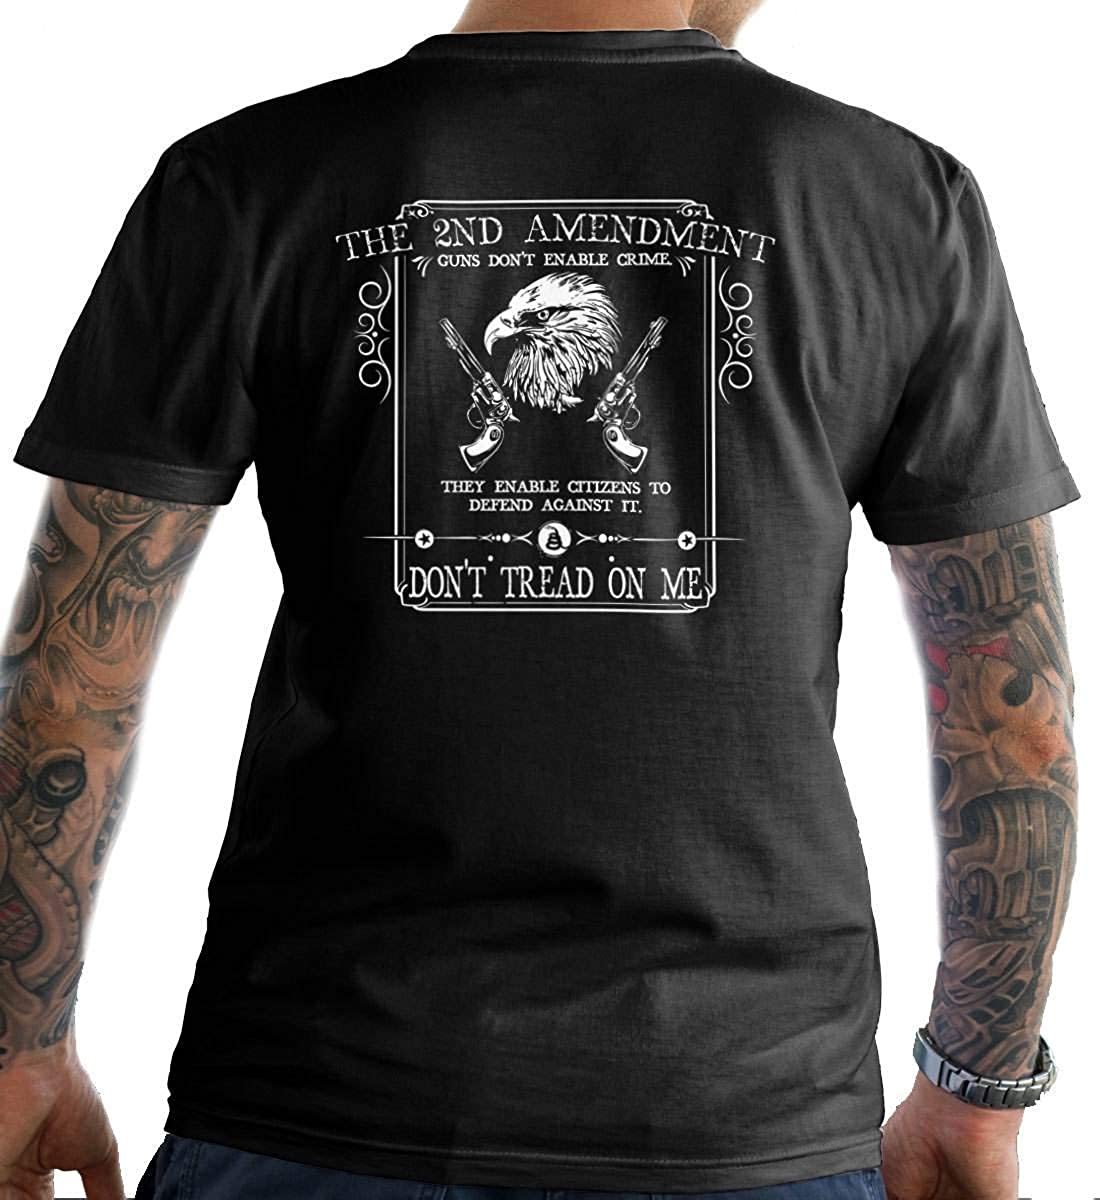 Sons Of Liberty The 2nd Amendment: Guns Don't Enable Crime  T-Shirt  Made  in